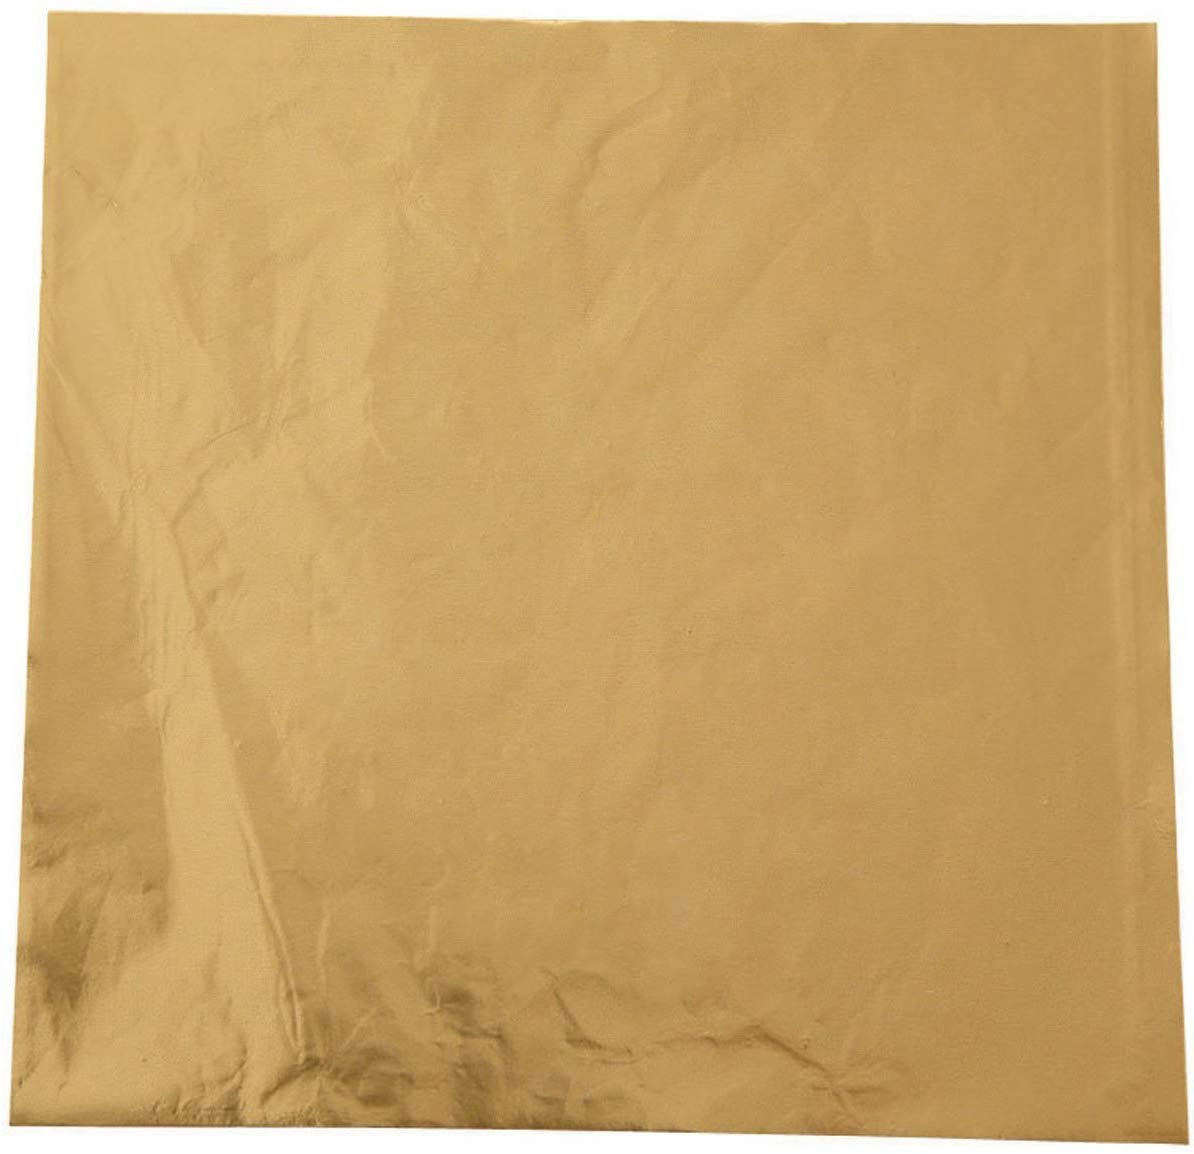 4 by 4-Inch 50-Pack Gold Wilton Foil Candy Wrappers